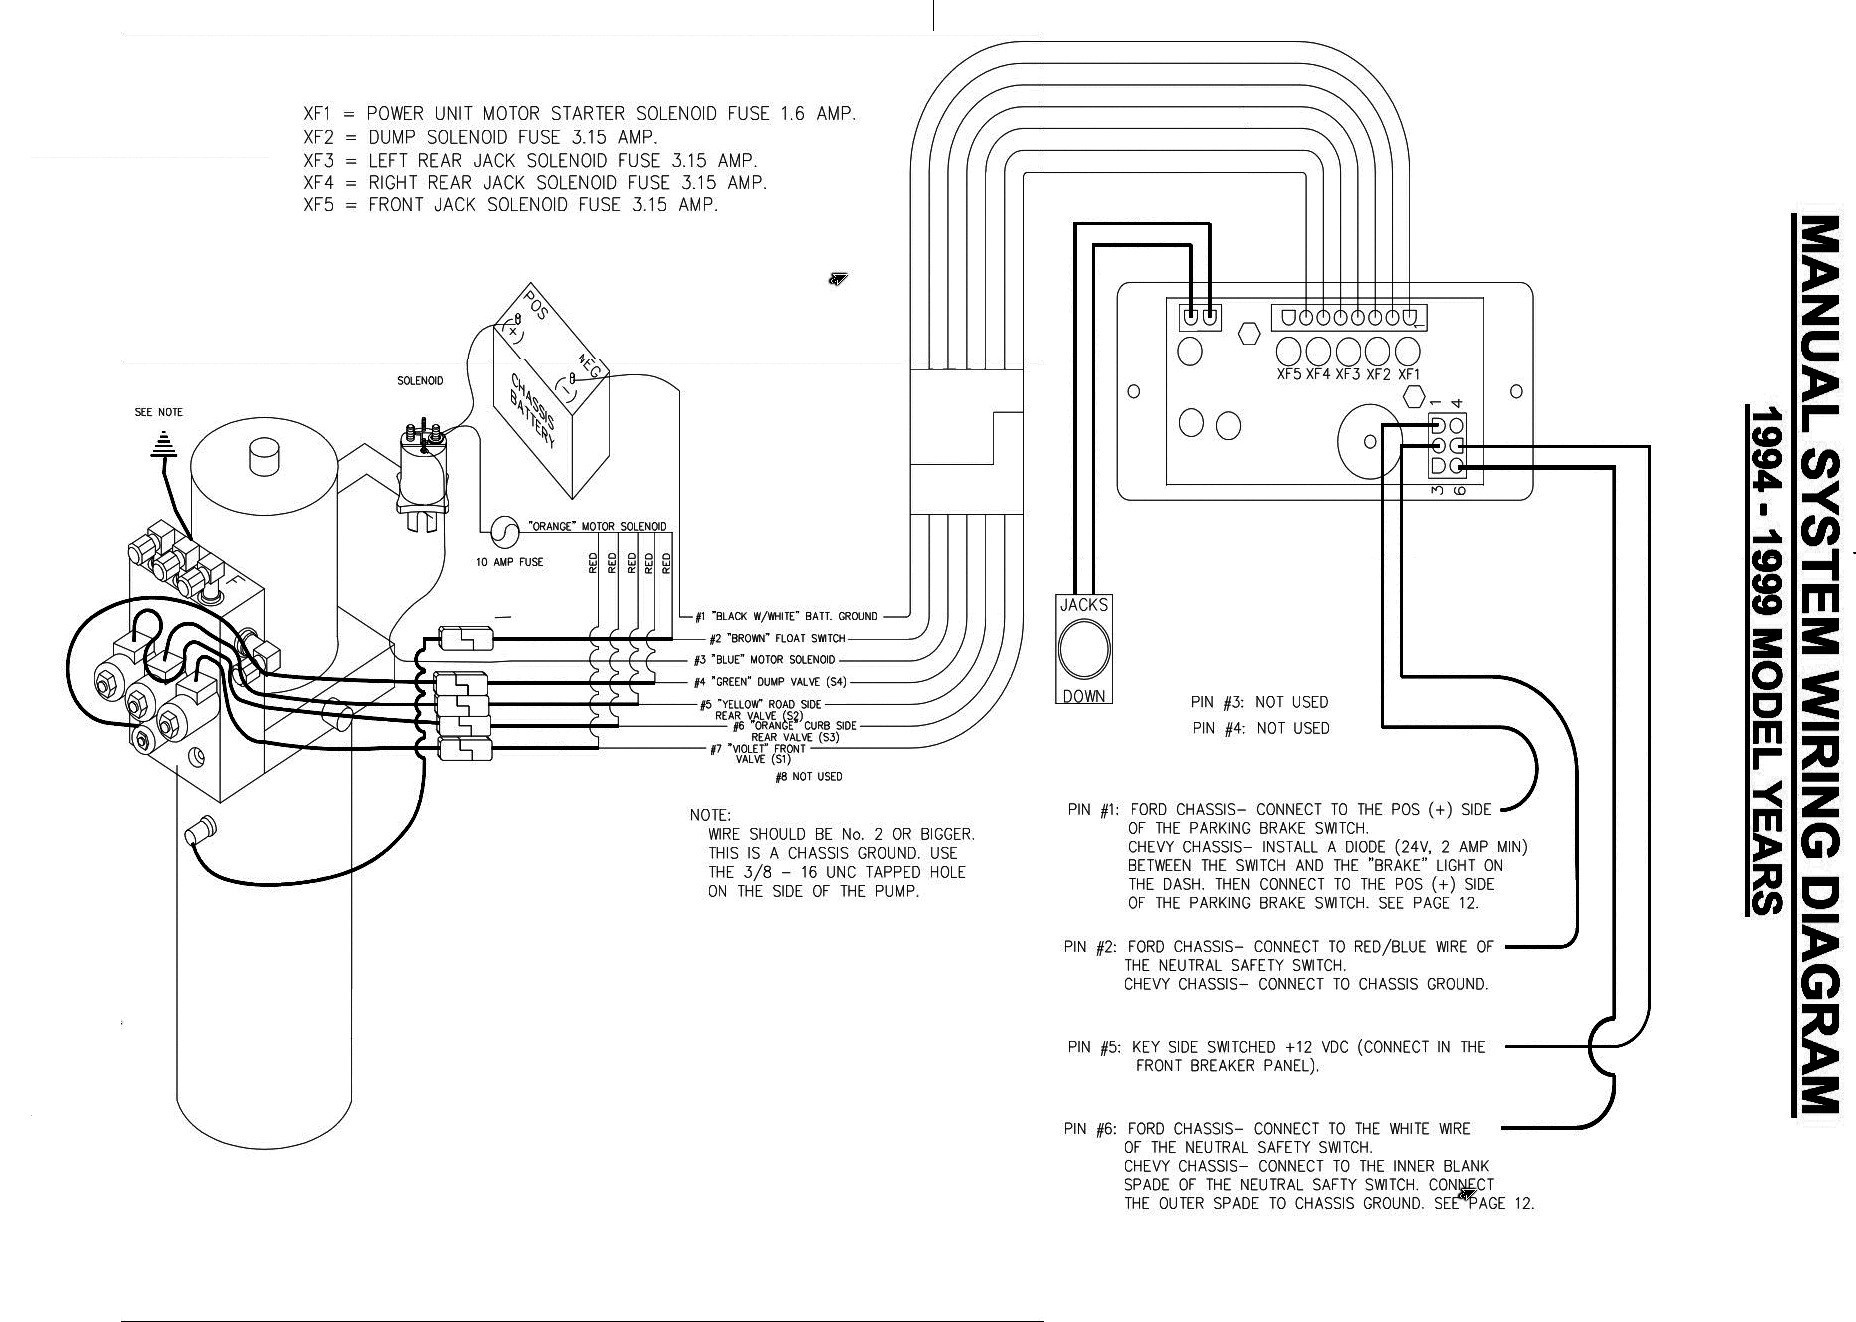 1999 fleetwood prowler wiring diagram